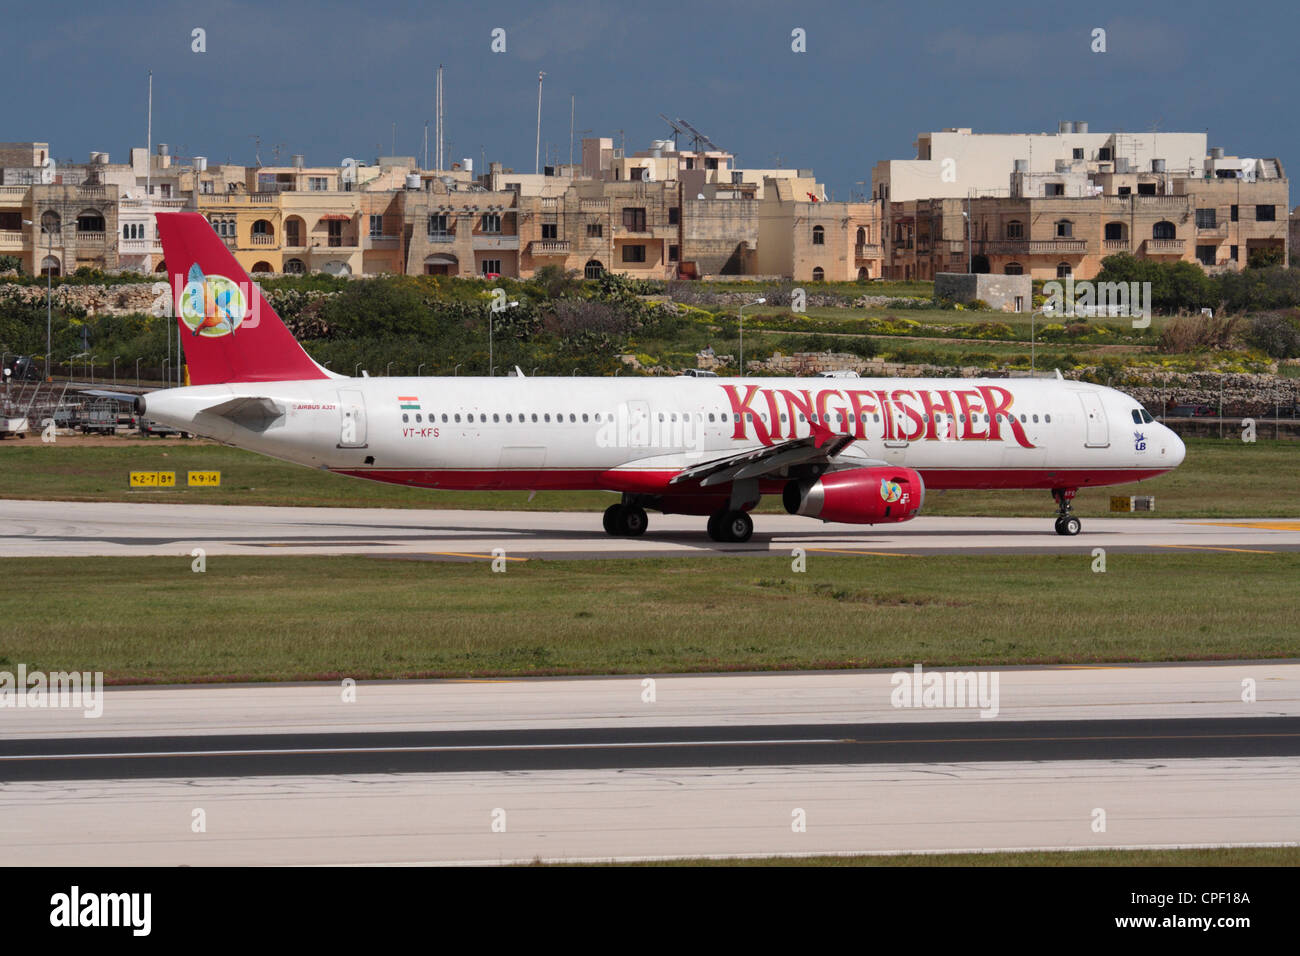 Kingfisher Airlines Airbus A321 Taxiing For Departure From Malta